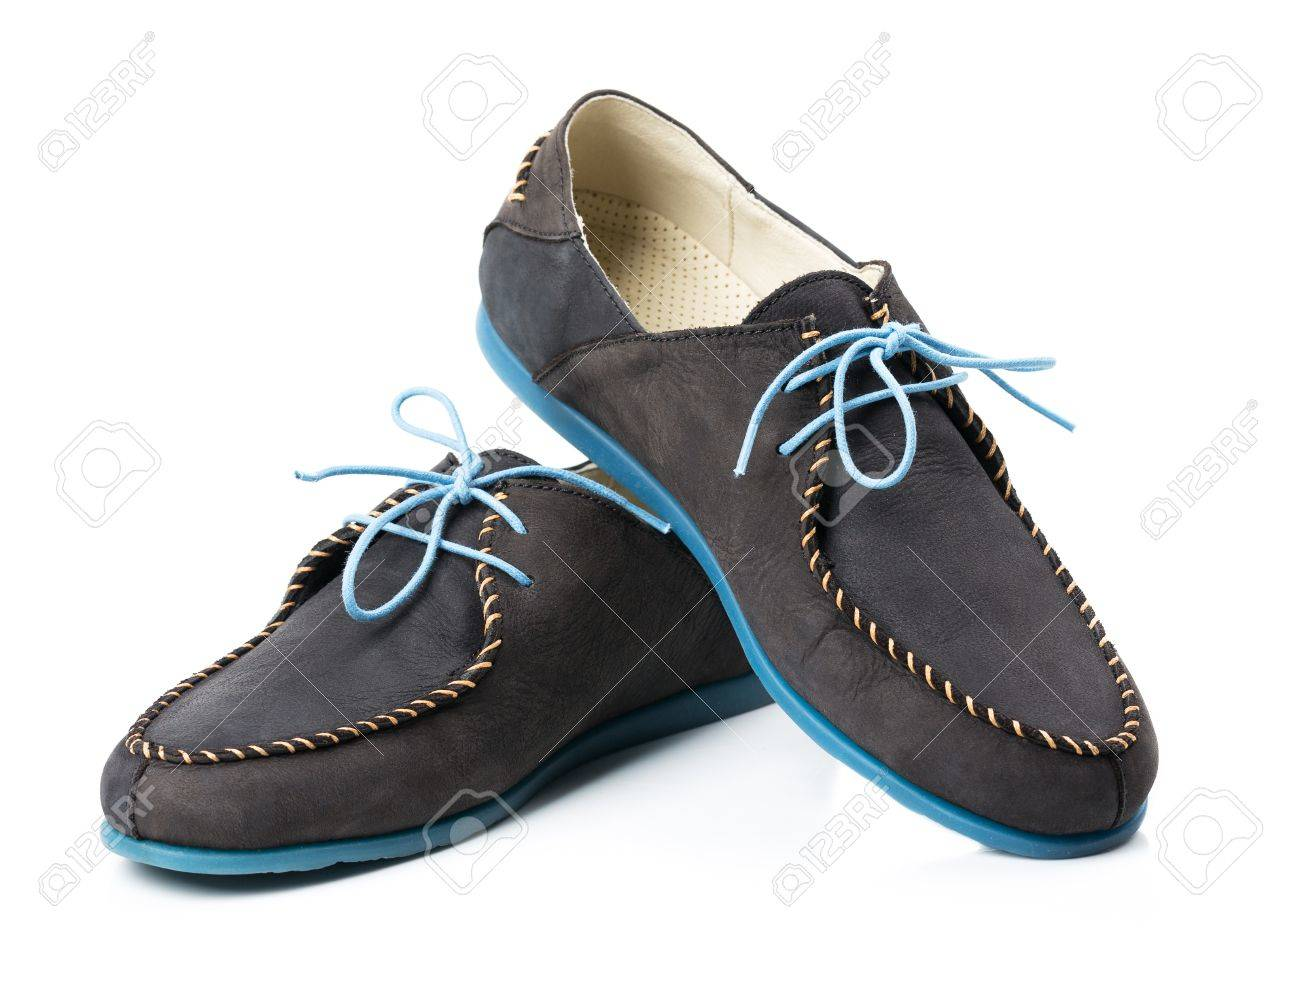 Leather Loafers With Blue Soles